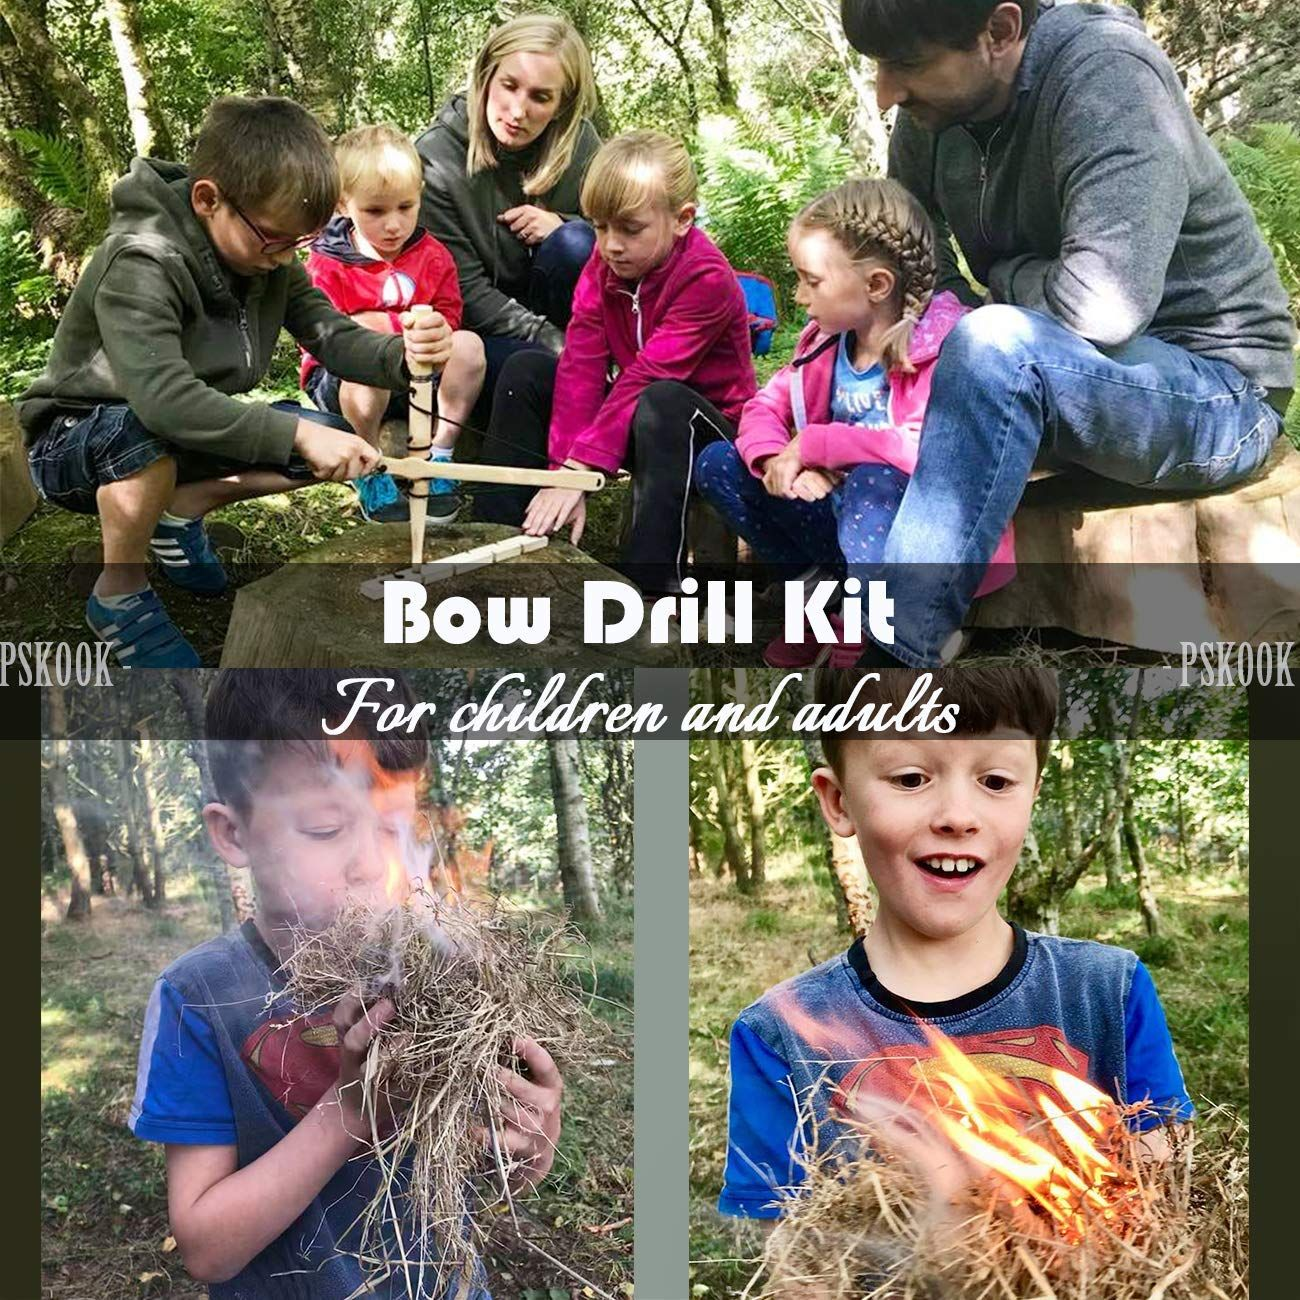 PSKOOK Bow Drill Kit Fire Starter Primitive Wood Survival Practice Friction Fire Tool Scout Outdoor Activity Kits for Teaching Outward Bound Training